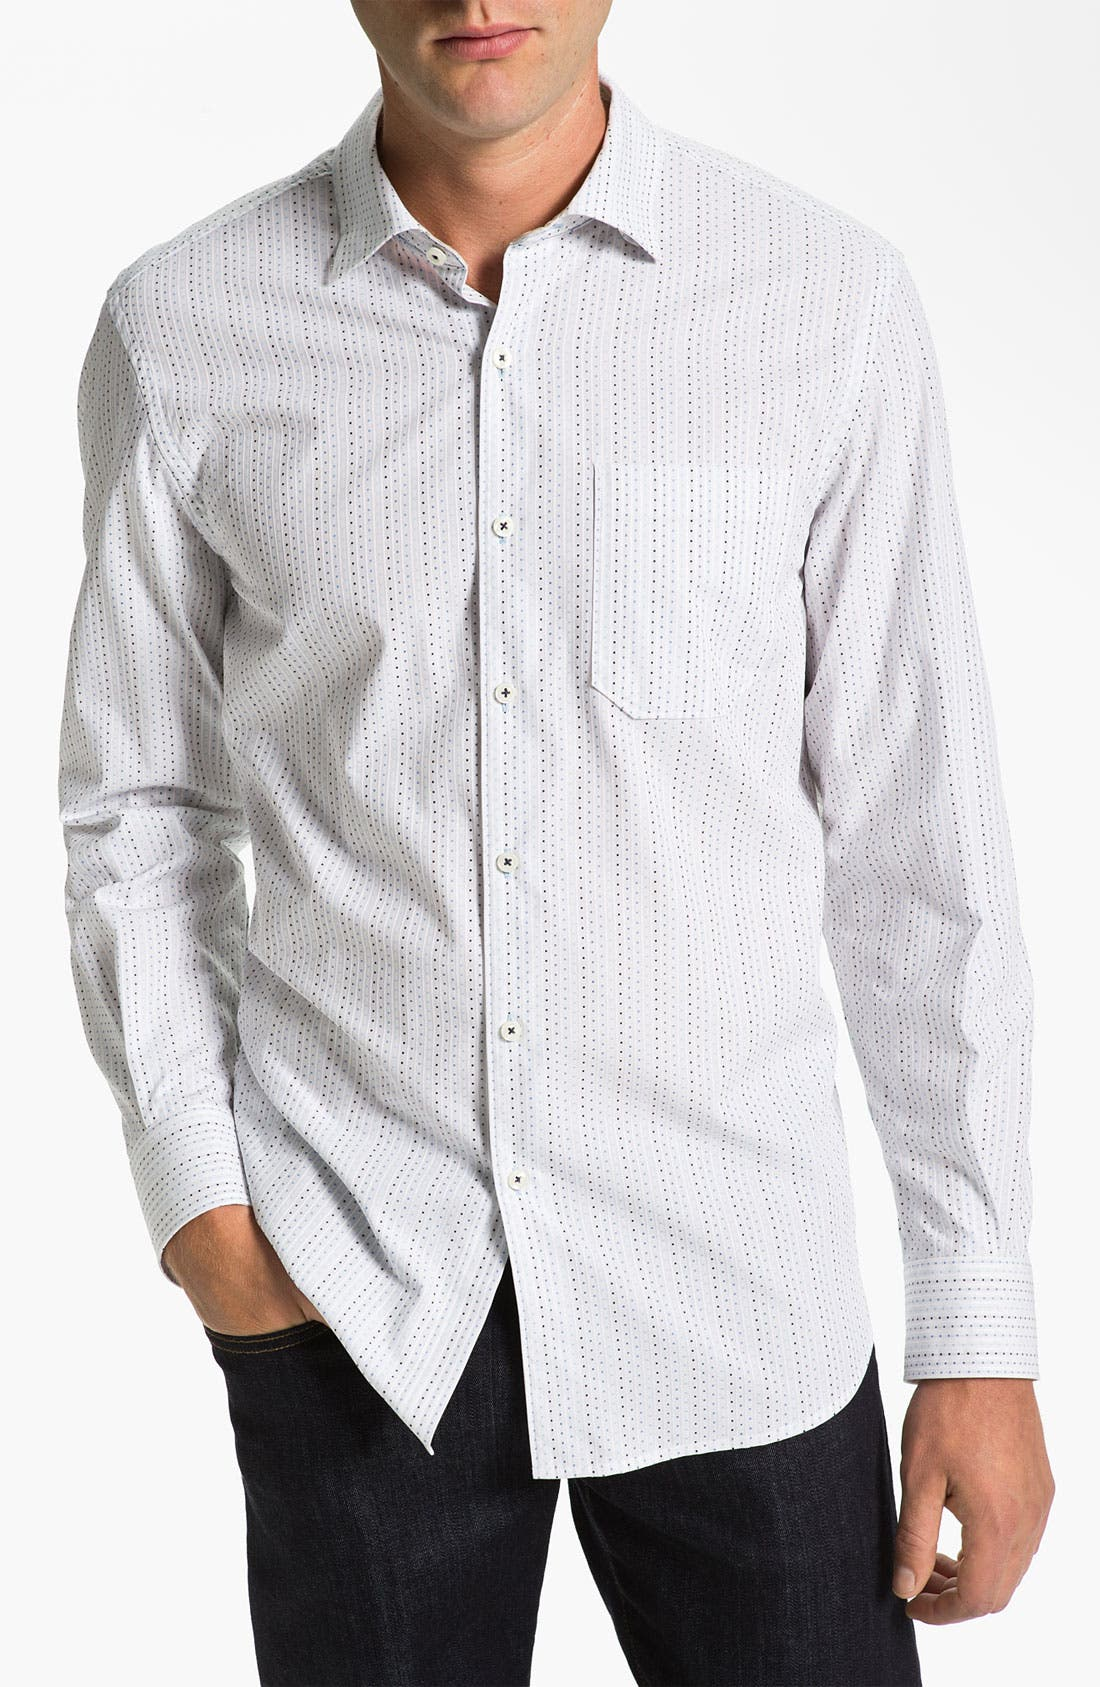 Alternate Image 1 Selected - Tommy Bahama 'Jacquart-a Stripe' Sport Shirt